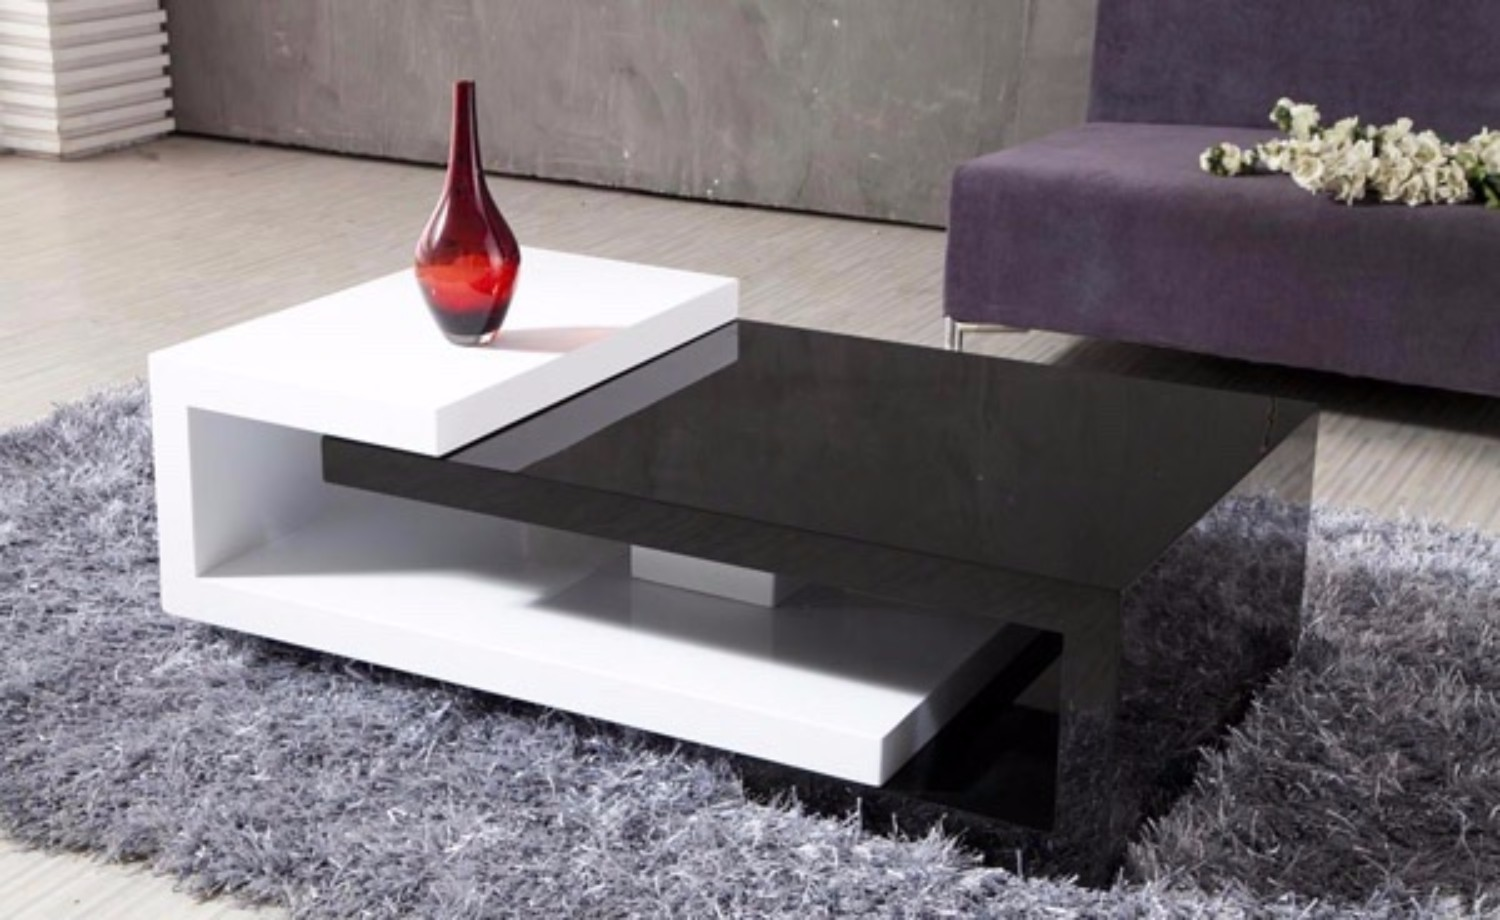 Modern Wooden Coffee Table Designs Get Ideas For A New Center Table For Your Living Room